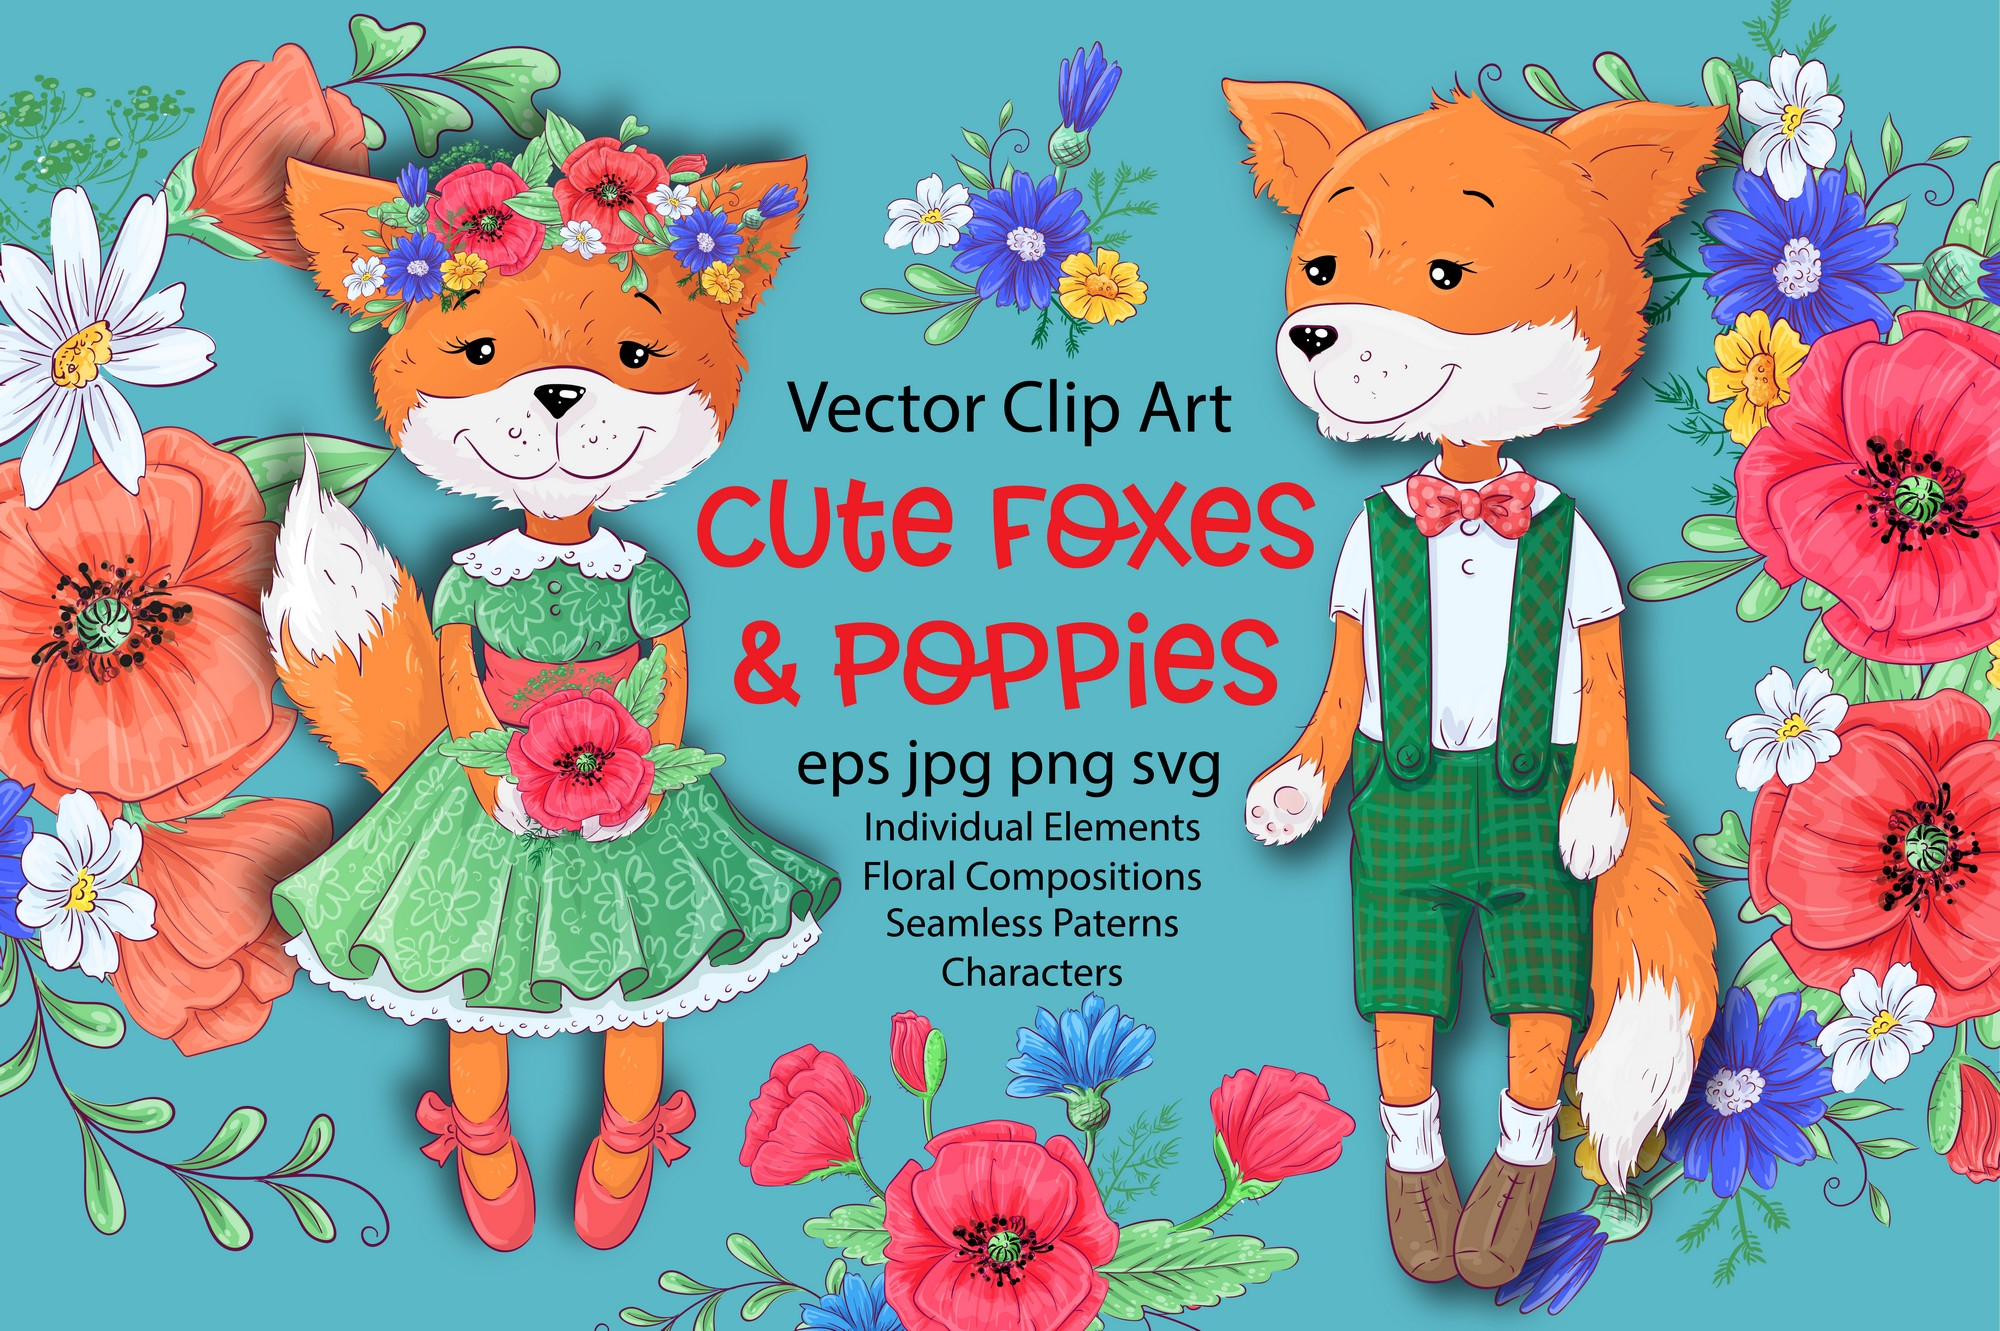 Download Free Cute Foxes And Poppies Vector Clip Art Graphic By Nicjulia for Cricut Explore, Silhouette and other cutting machines.